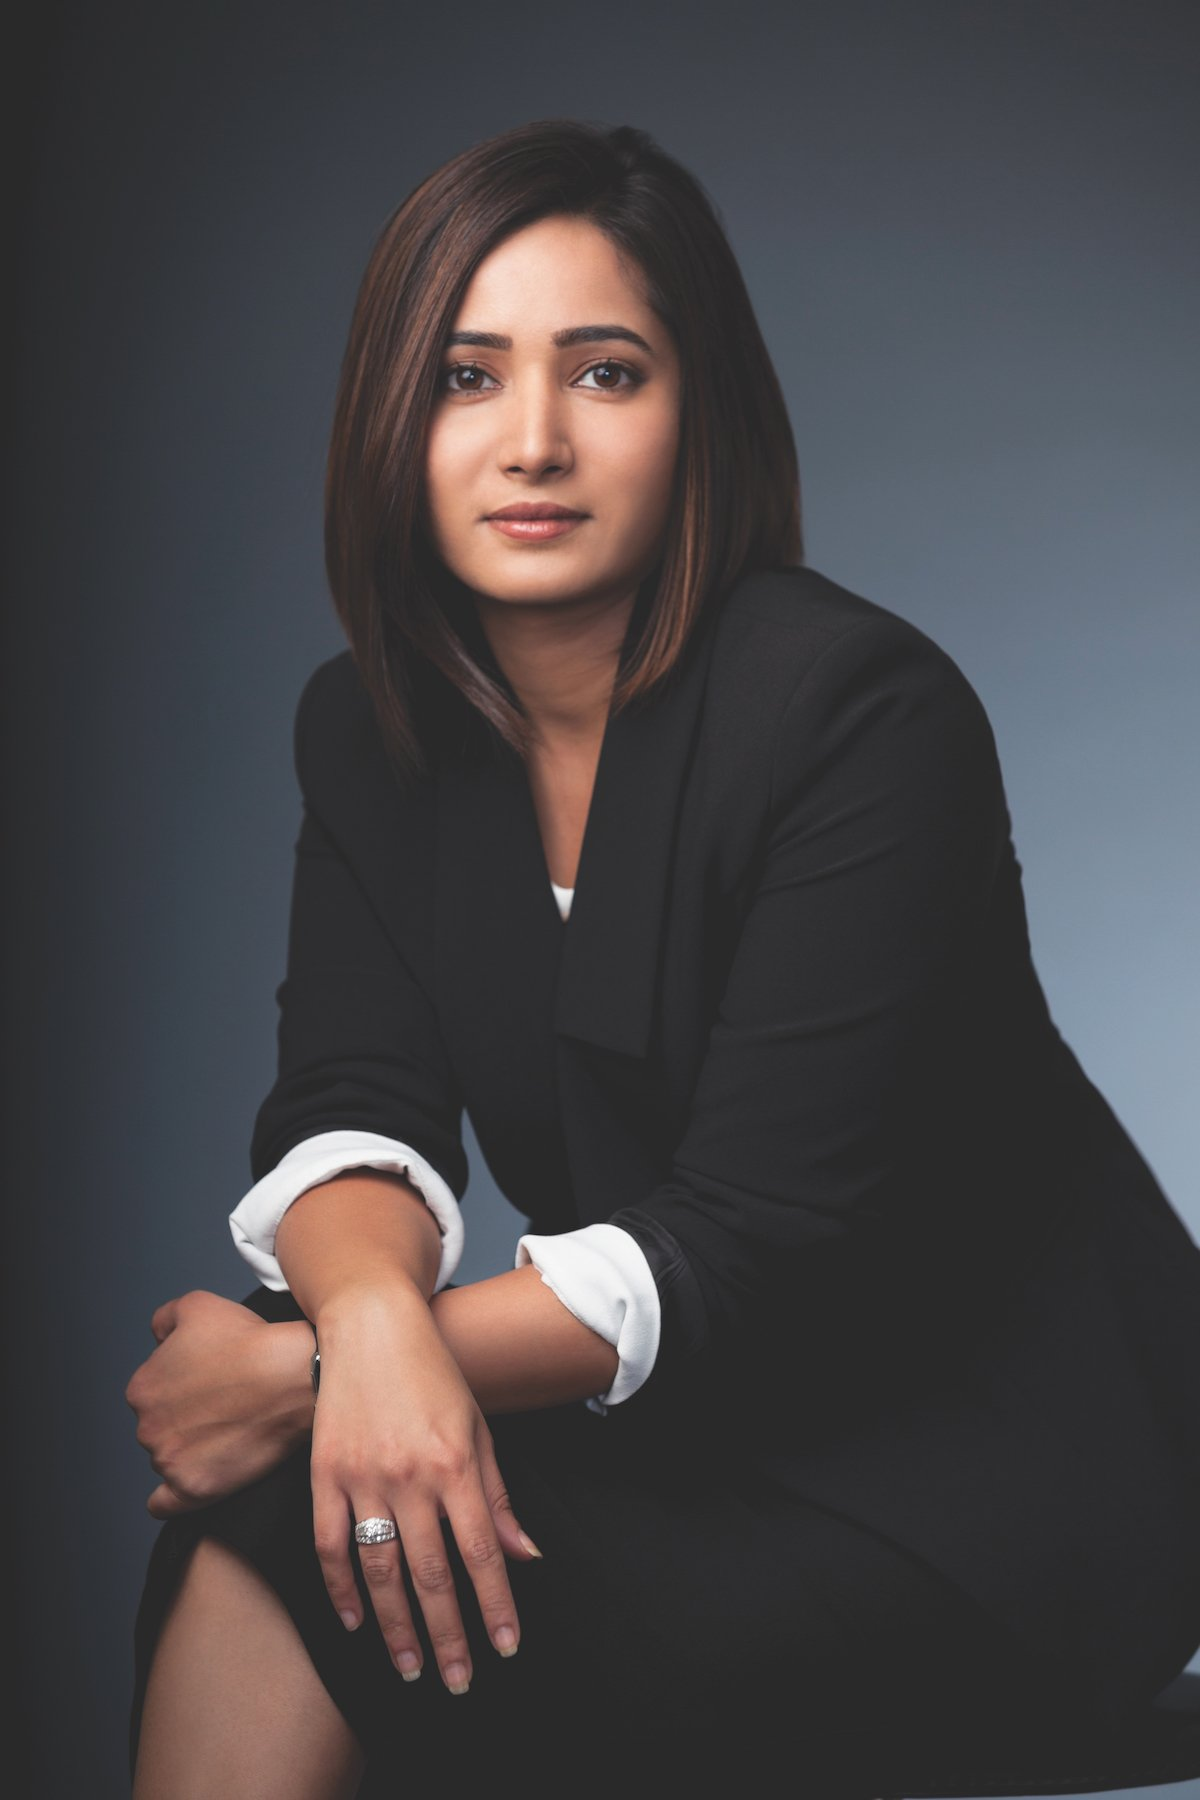 Nadia Chauhan, Managing Director of Parle Agro